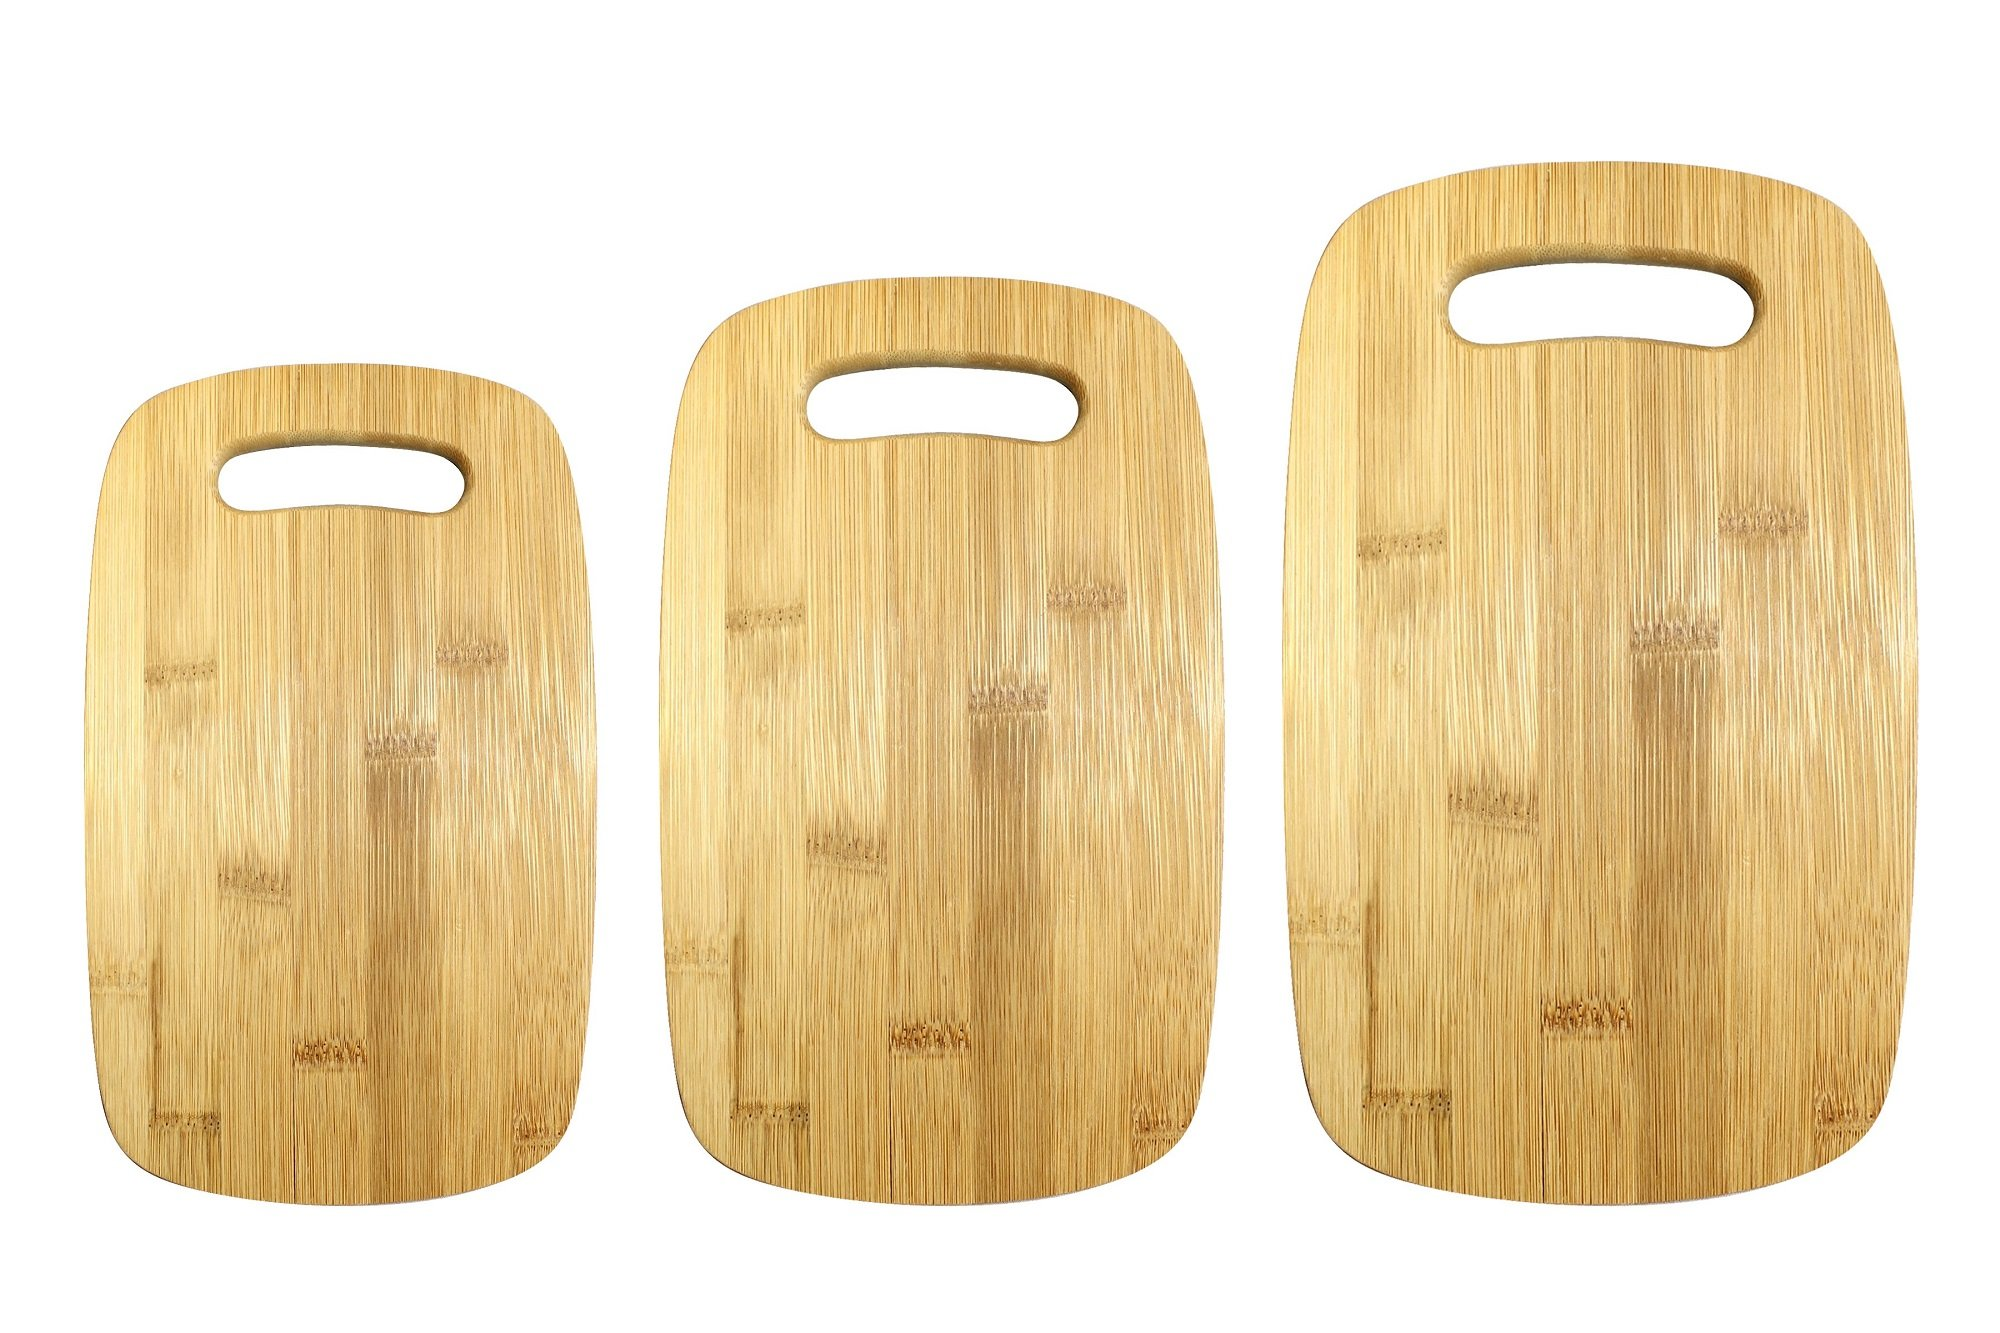 Gourmet Home Products Bamboo Cutting Board Set with Cut Out Handles (3 Pack), Natural